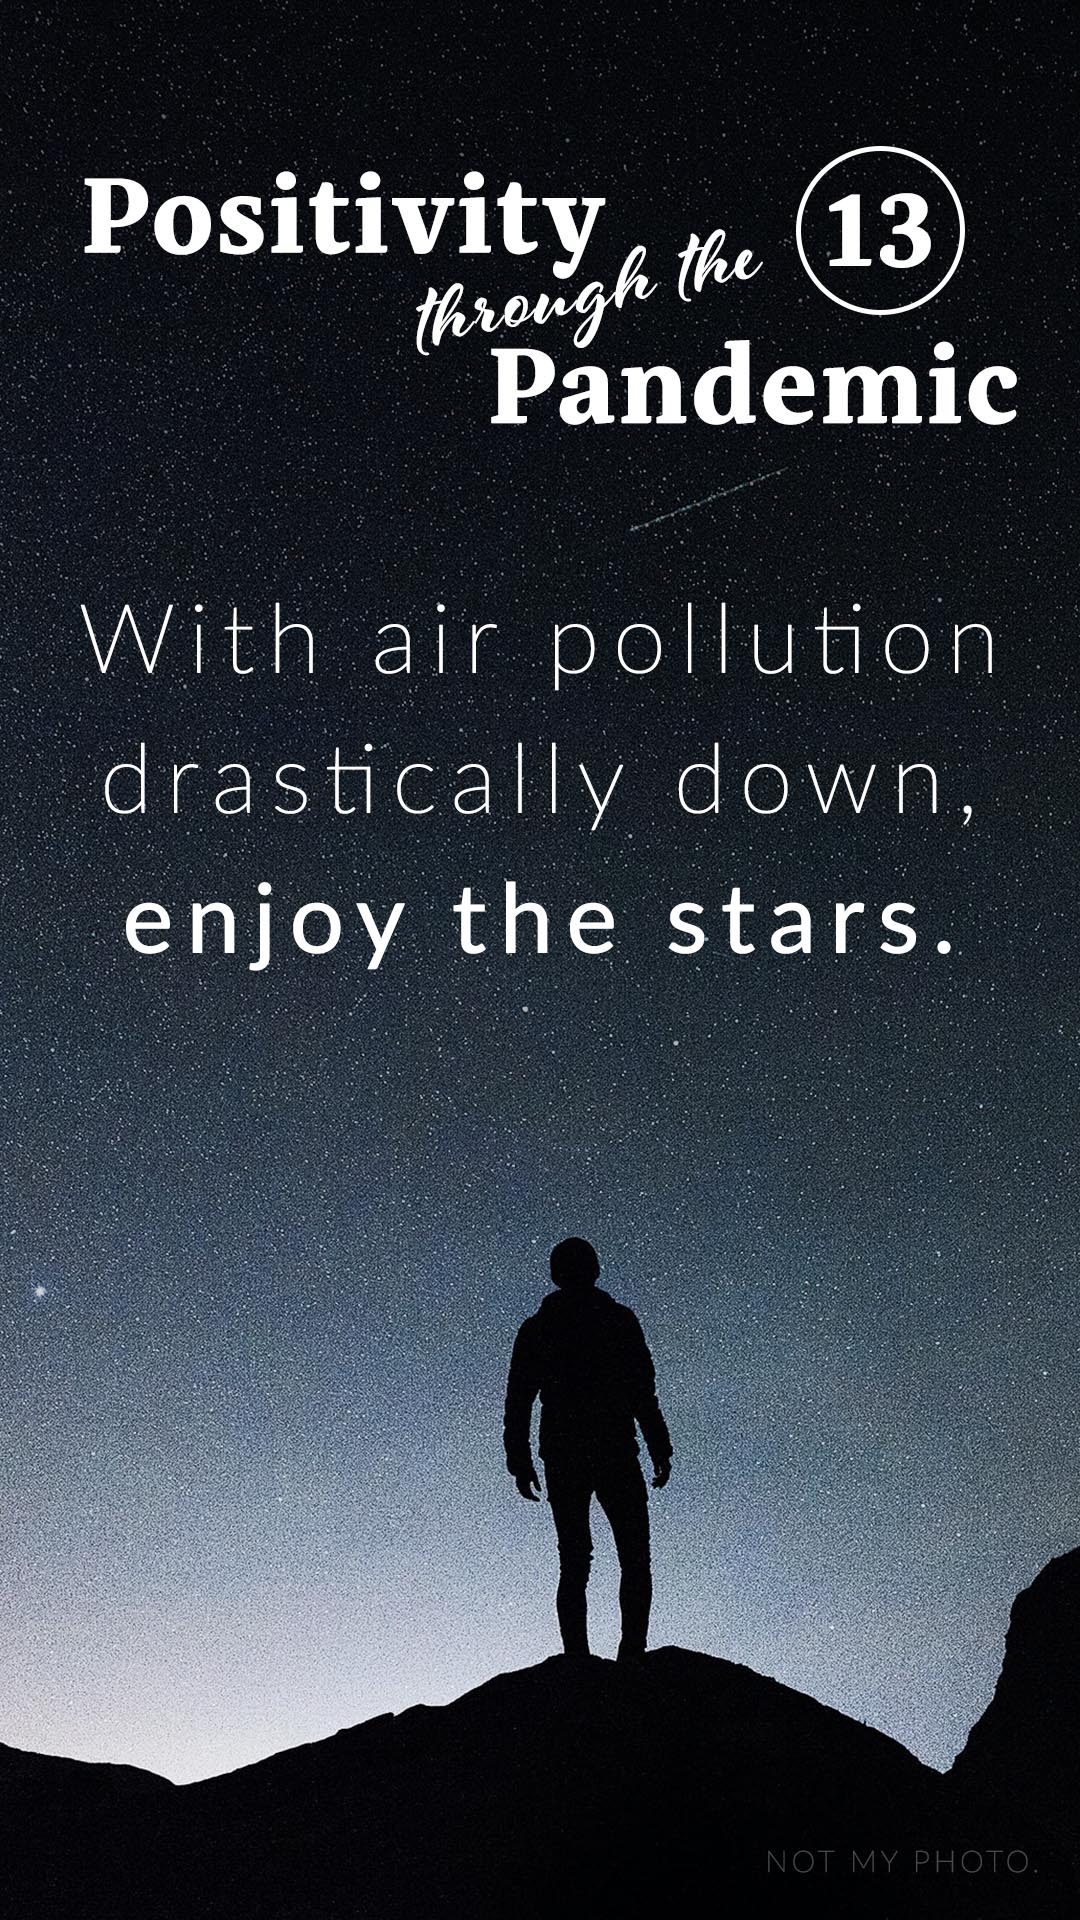 Positivity through the Pandemic #13: With air pollution drastically down enjoy the stars